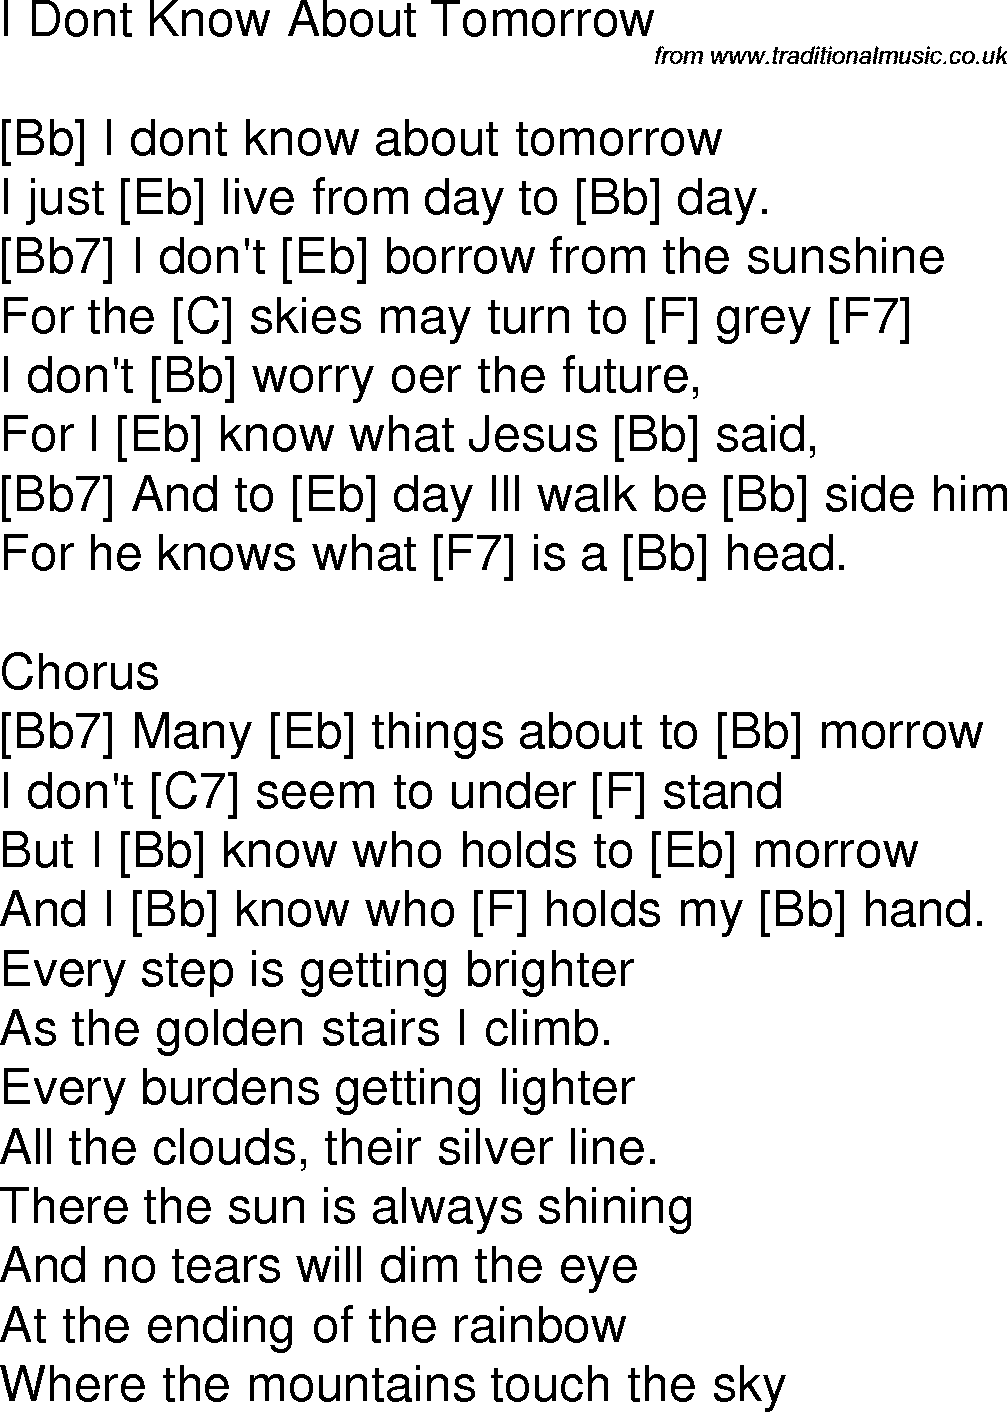 Old Time Song Lyrics With Chords For I Dont Know About Tomorrow Bb